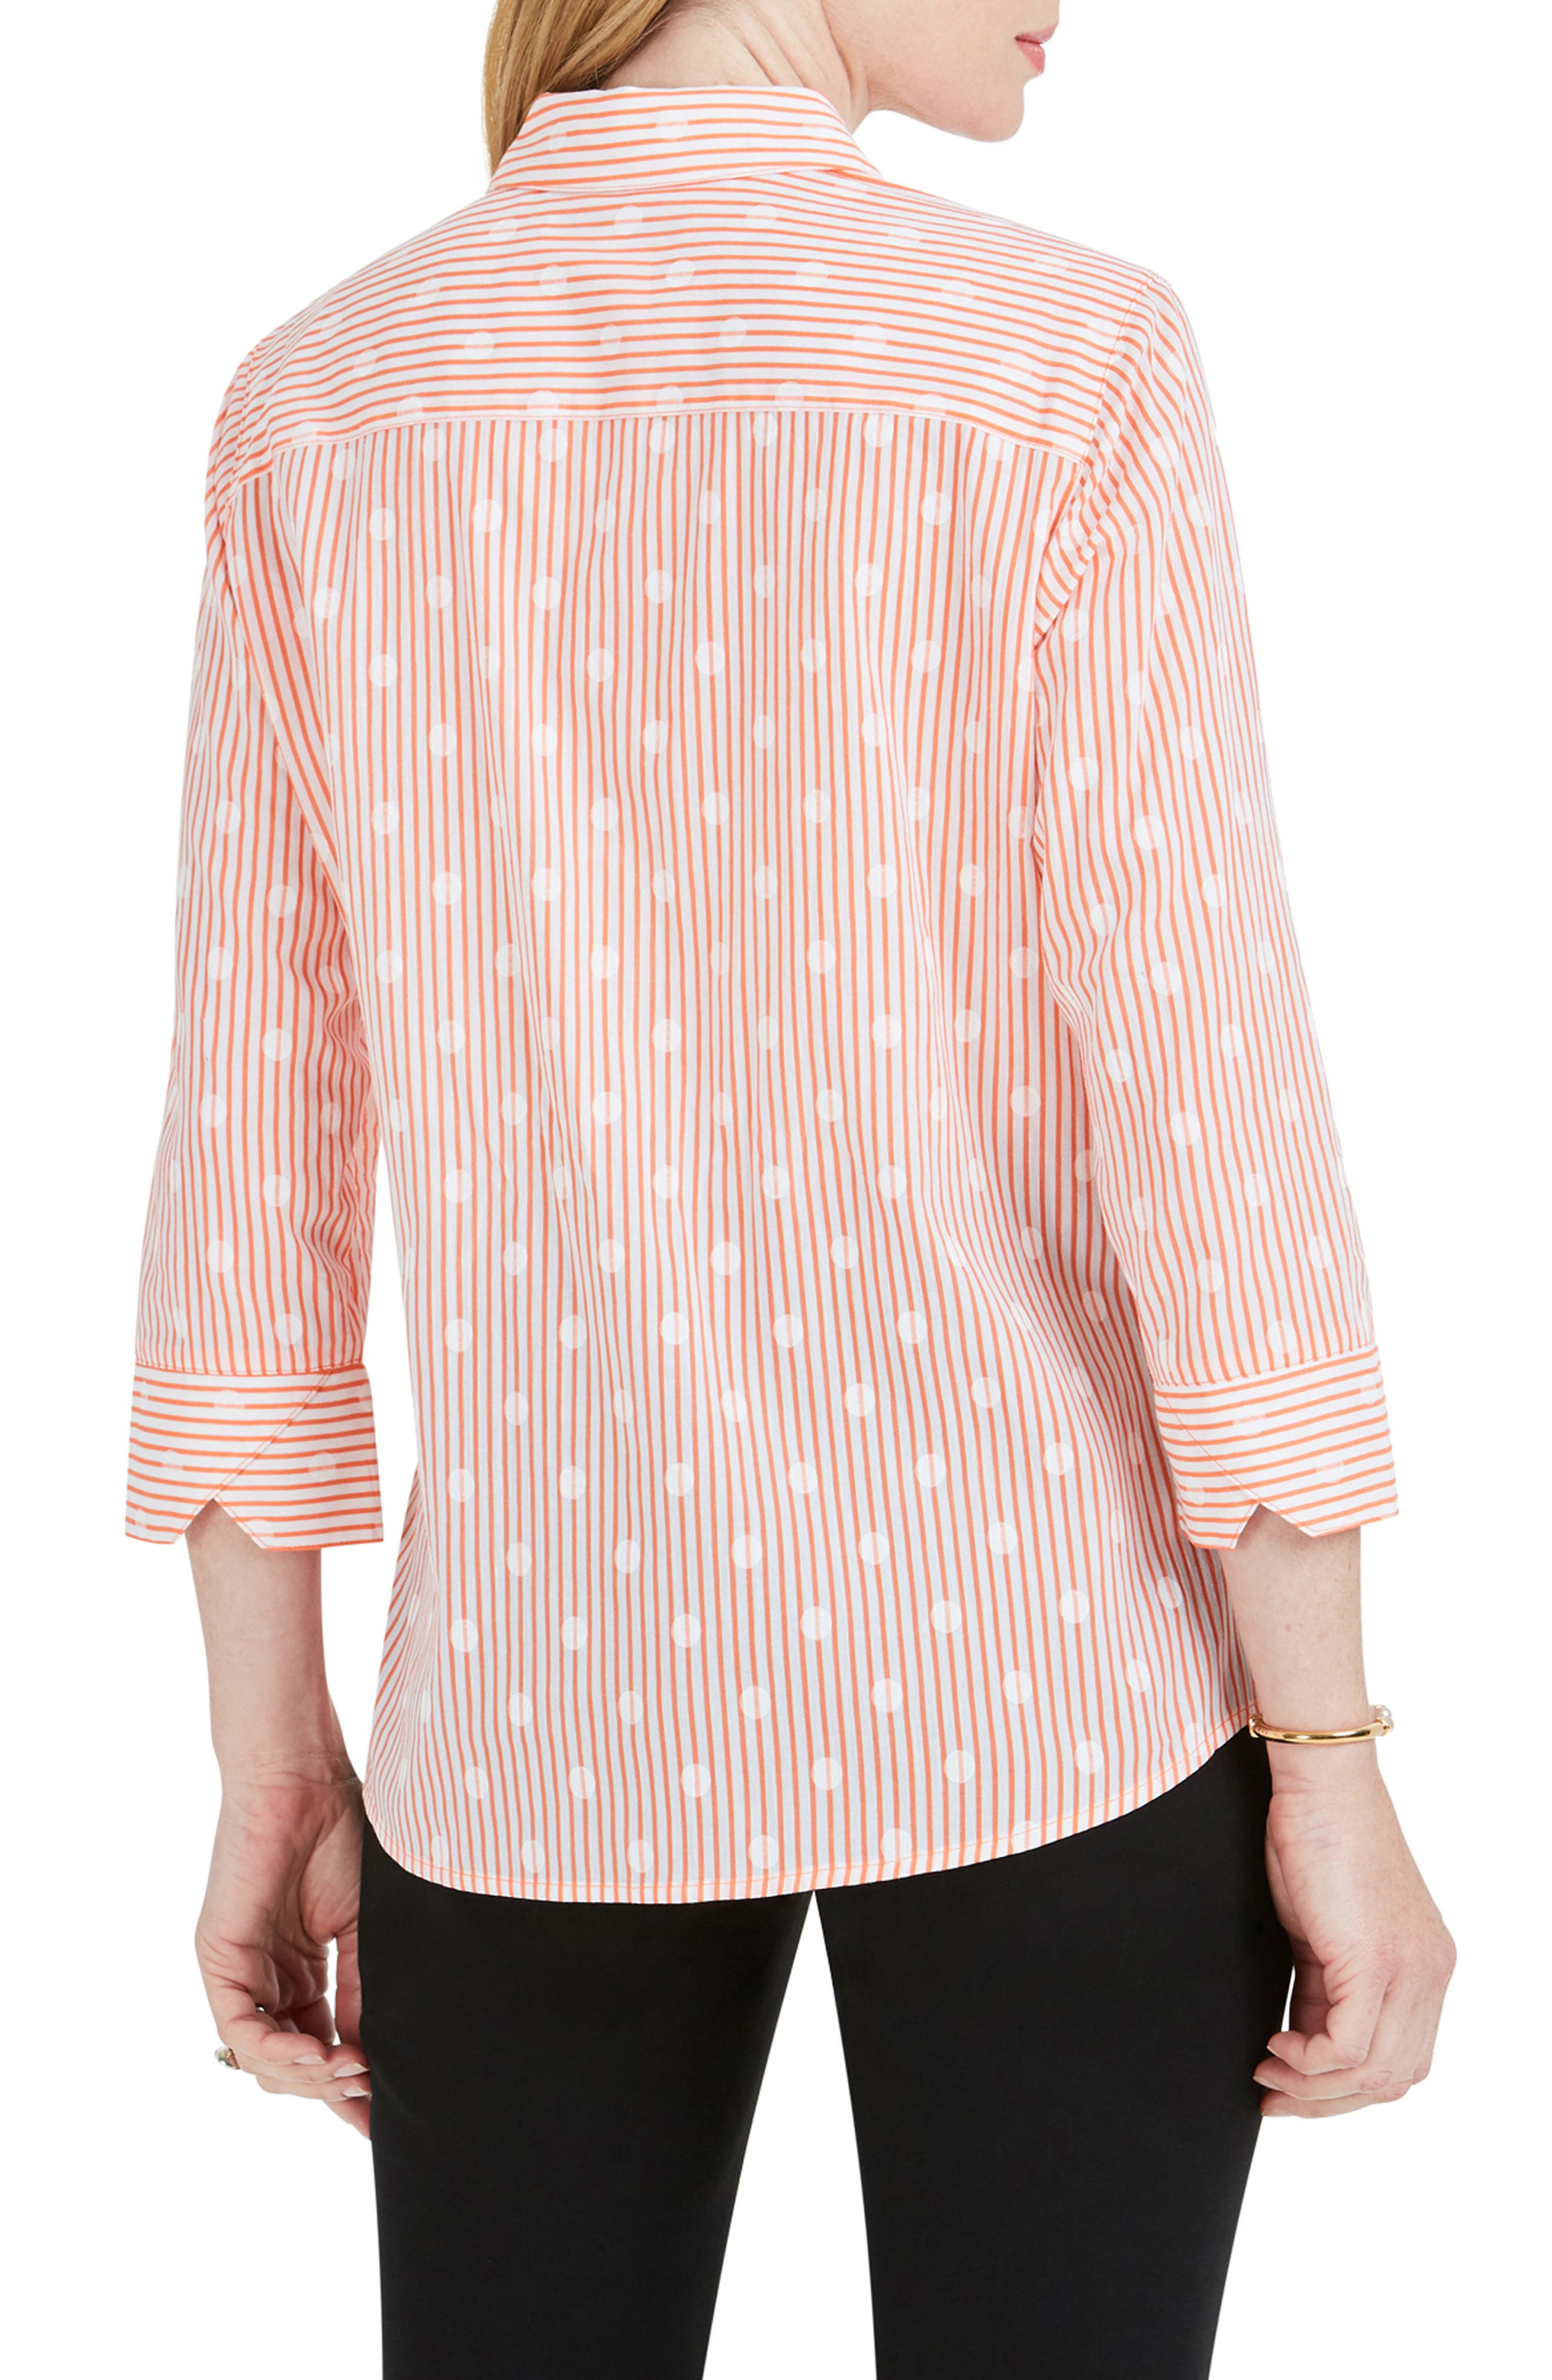 FOXCROFT,                             Ava Dot Over Stripe Print Shirt,                             Alternate thumbnail 2, color,                             CLOUD CORAL